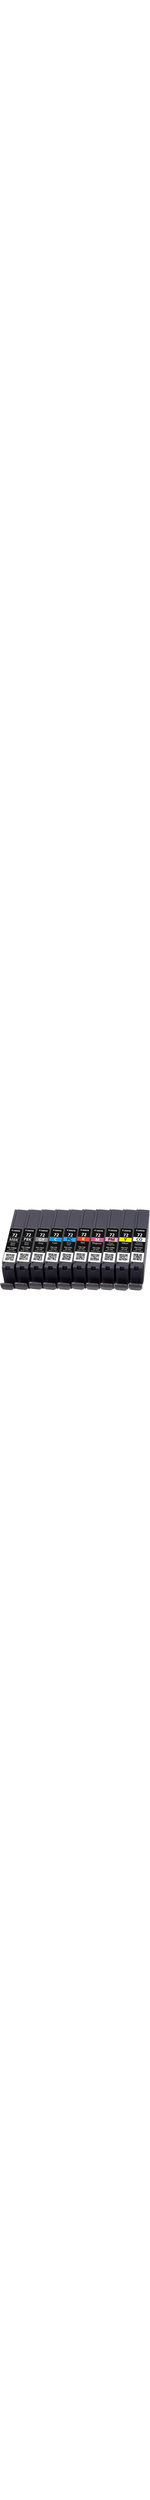 Canon PGI-72 Ink Cartridge - Photo Black, Photo Cyan, Photo Magenta, Grey